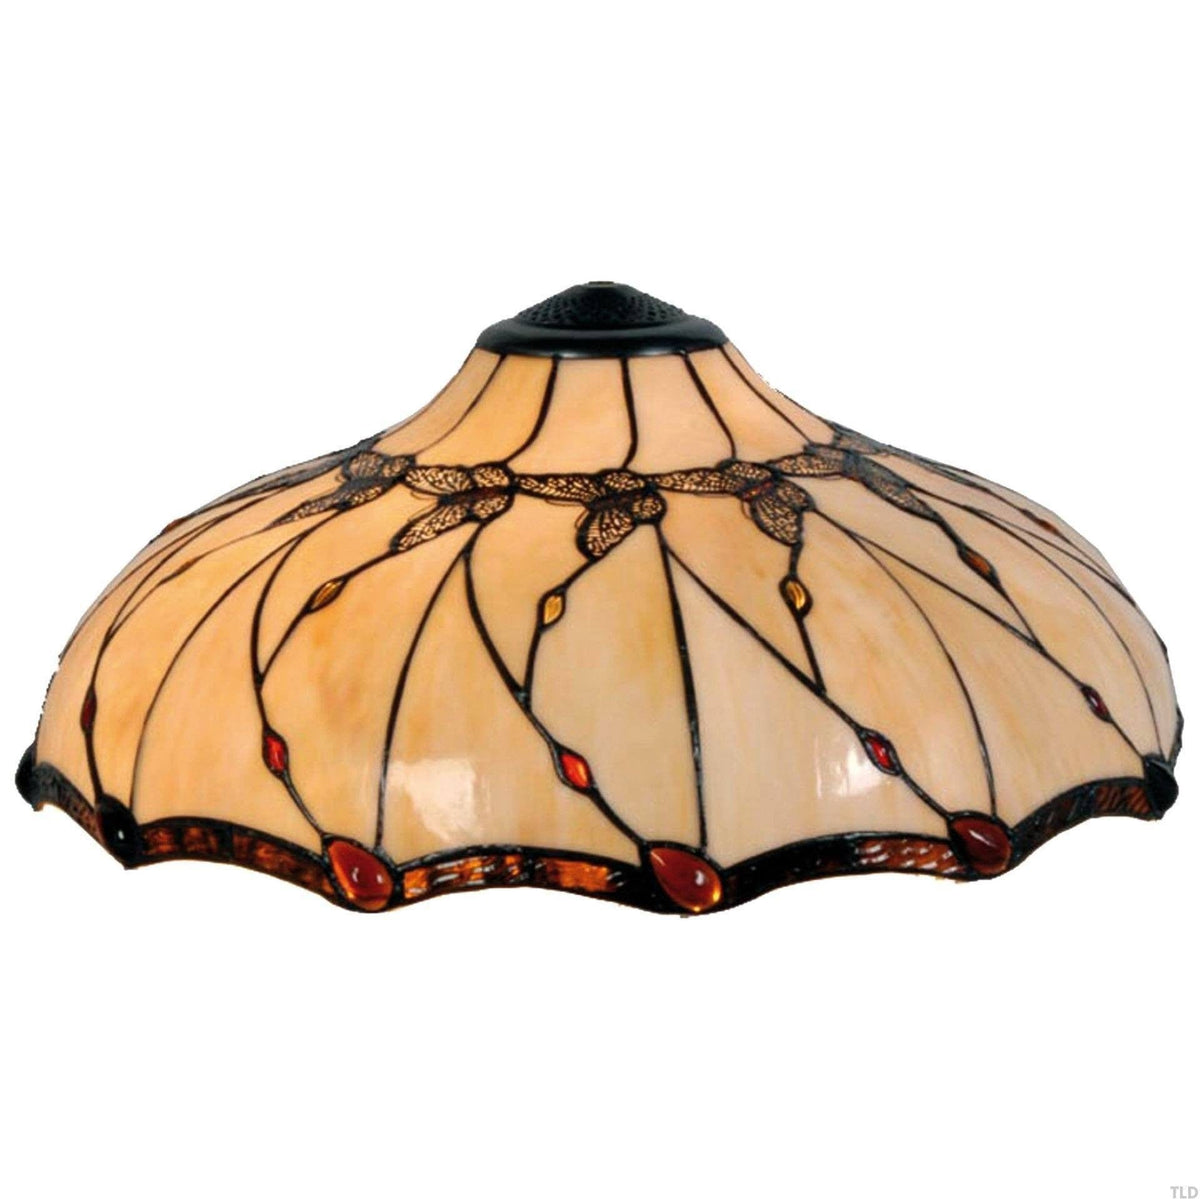 Tiffany Replacement Table Lamp Shades & Bases - Papillon Large Tiffany Replacement Lamp Shade